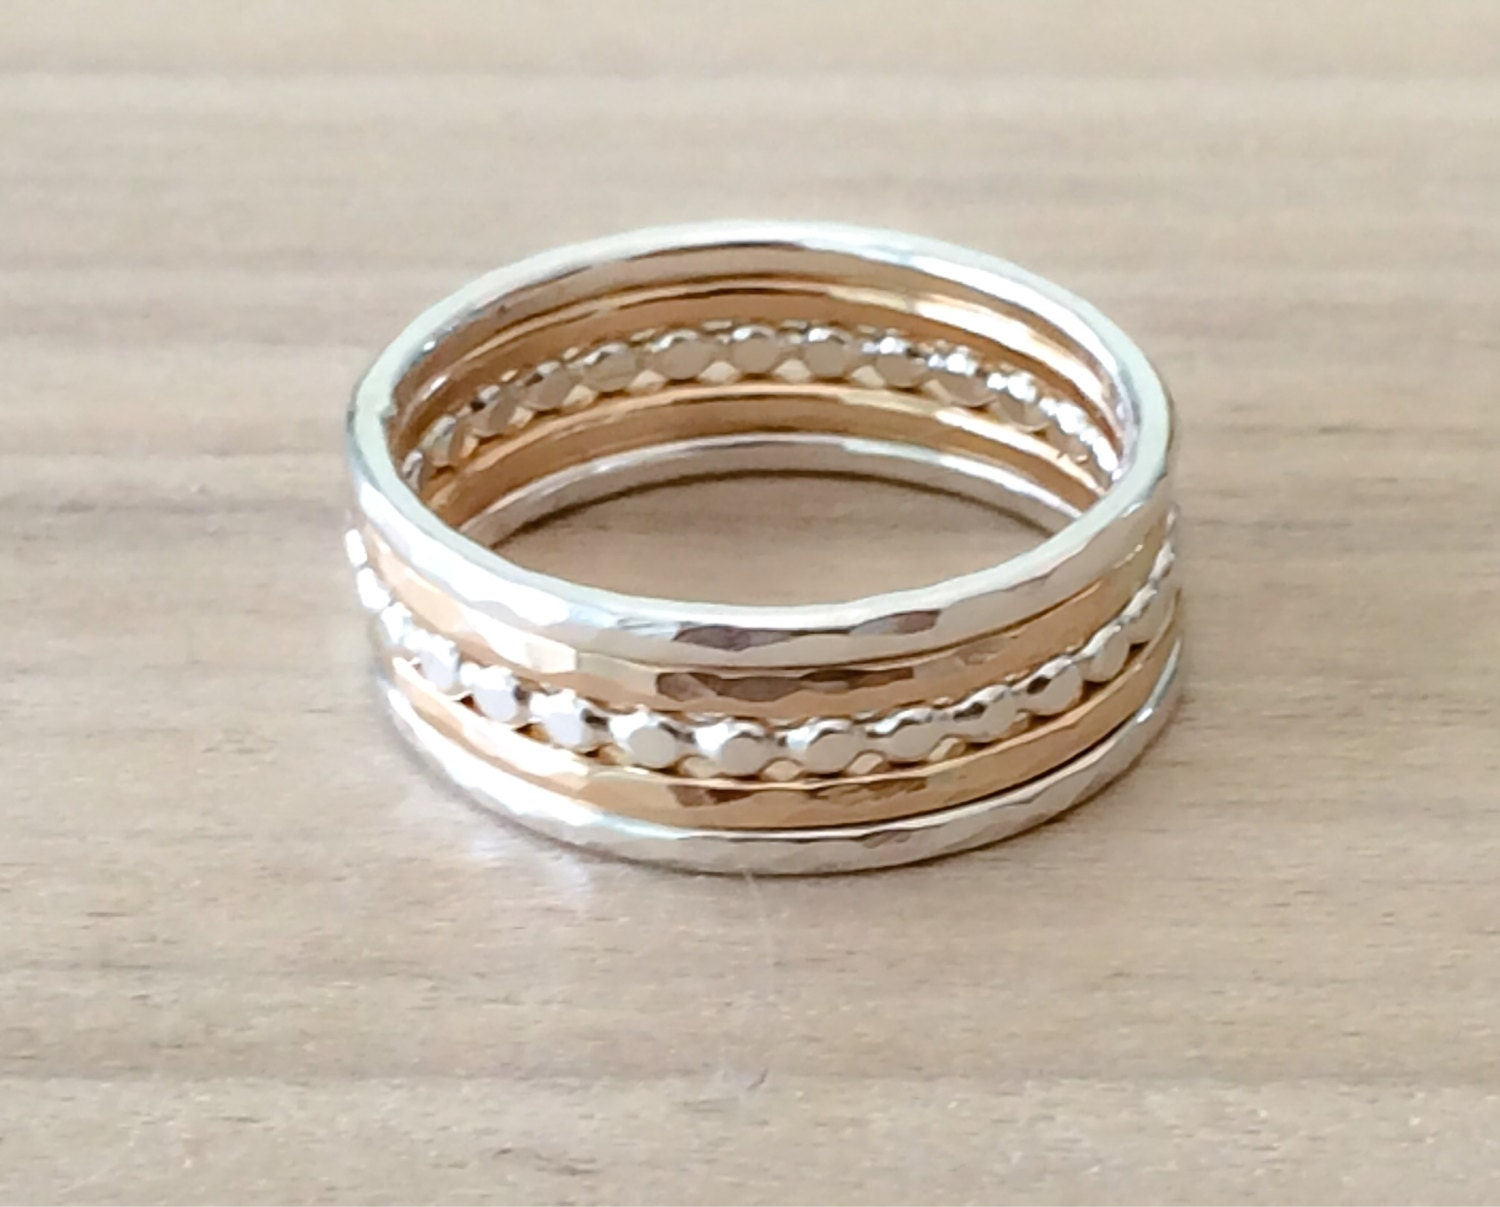 gold and silver rings mixed metal stacking set 14k gold. Black Bedroom Furniture Sets. Home Design Ideas